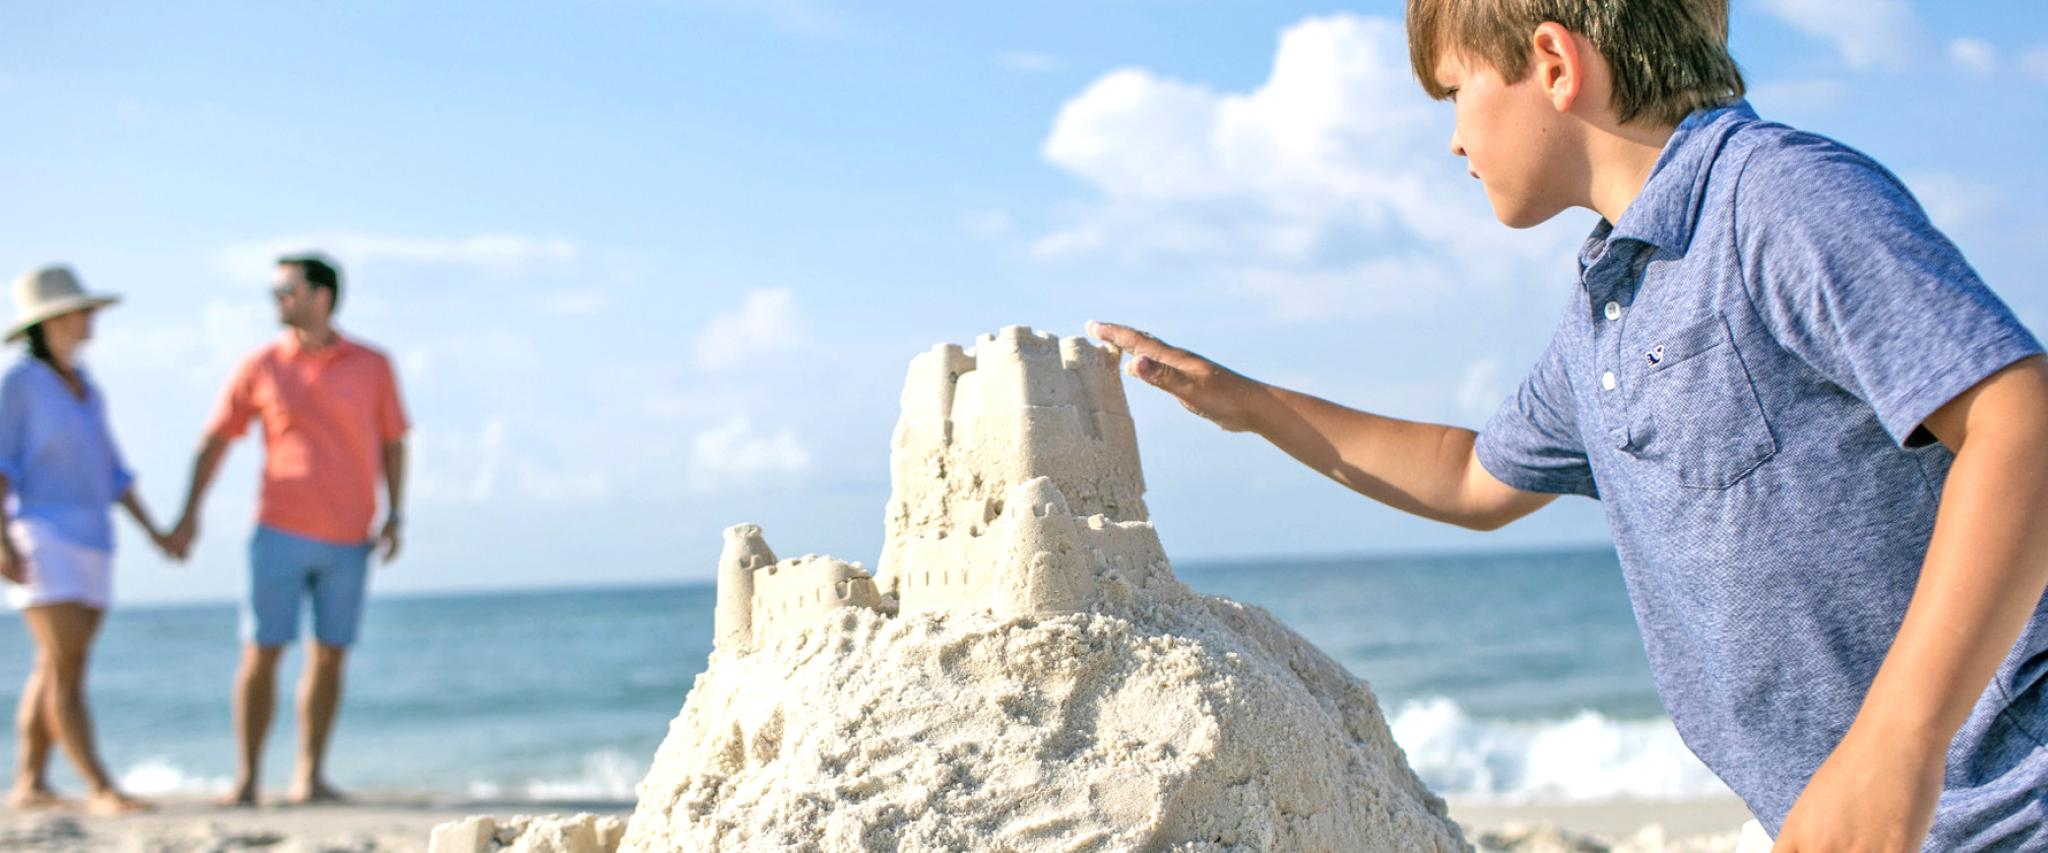 Boy building sand castle on Alabama's Beaches